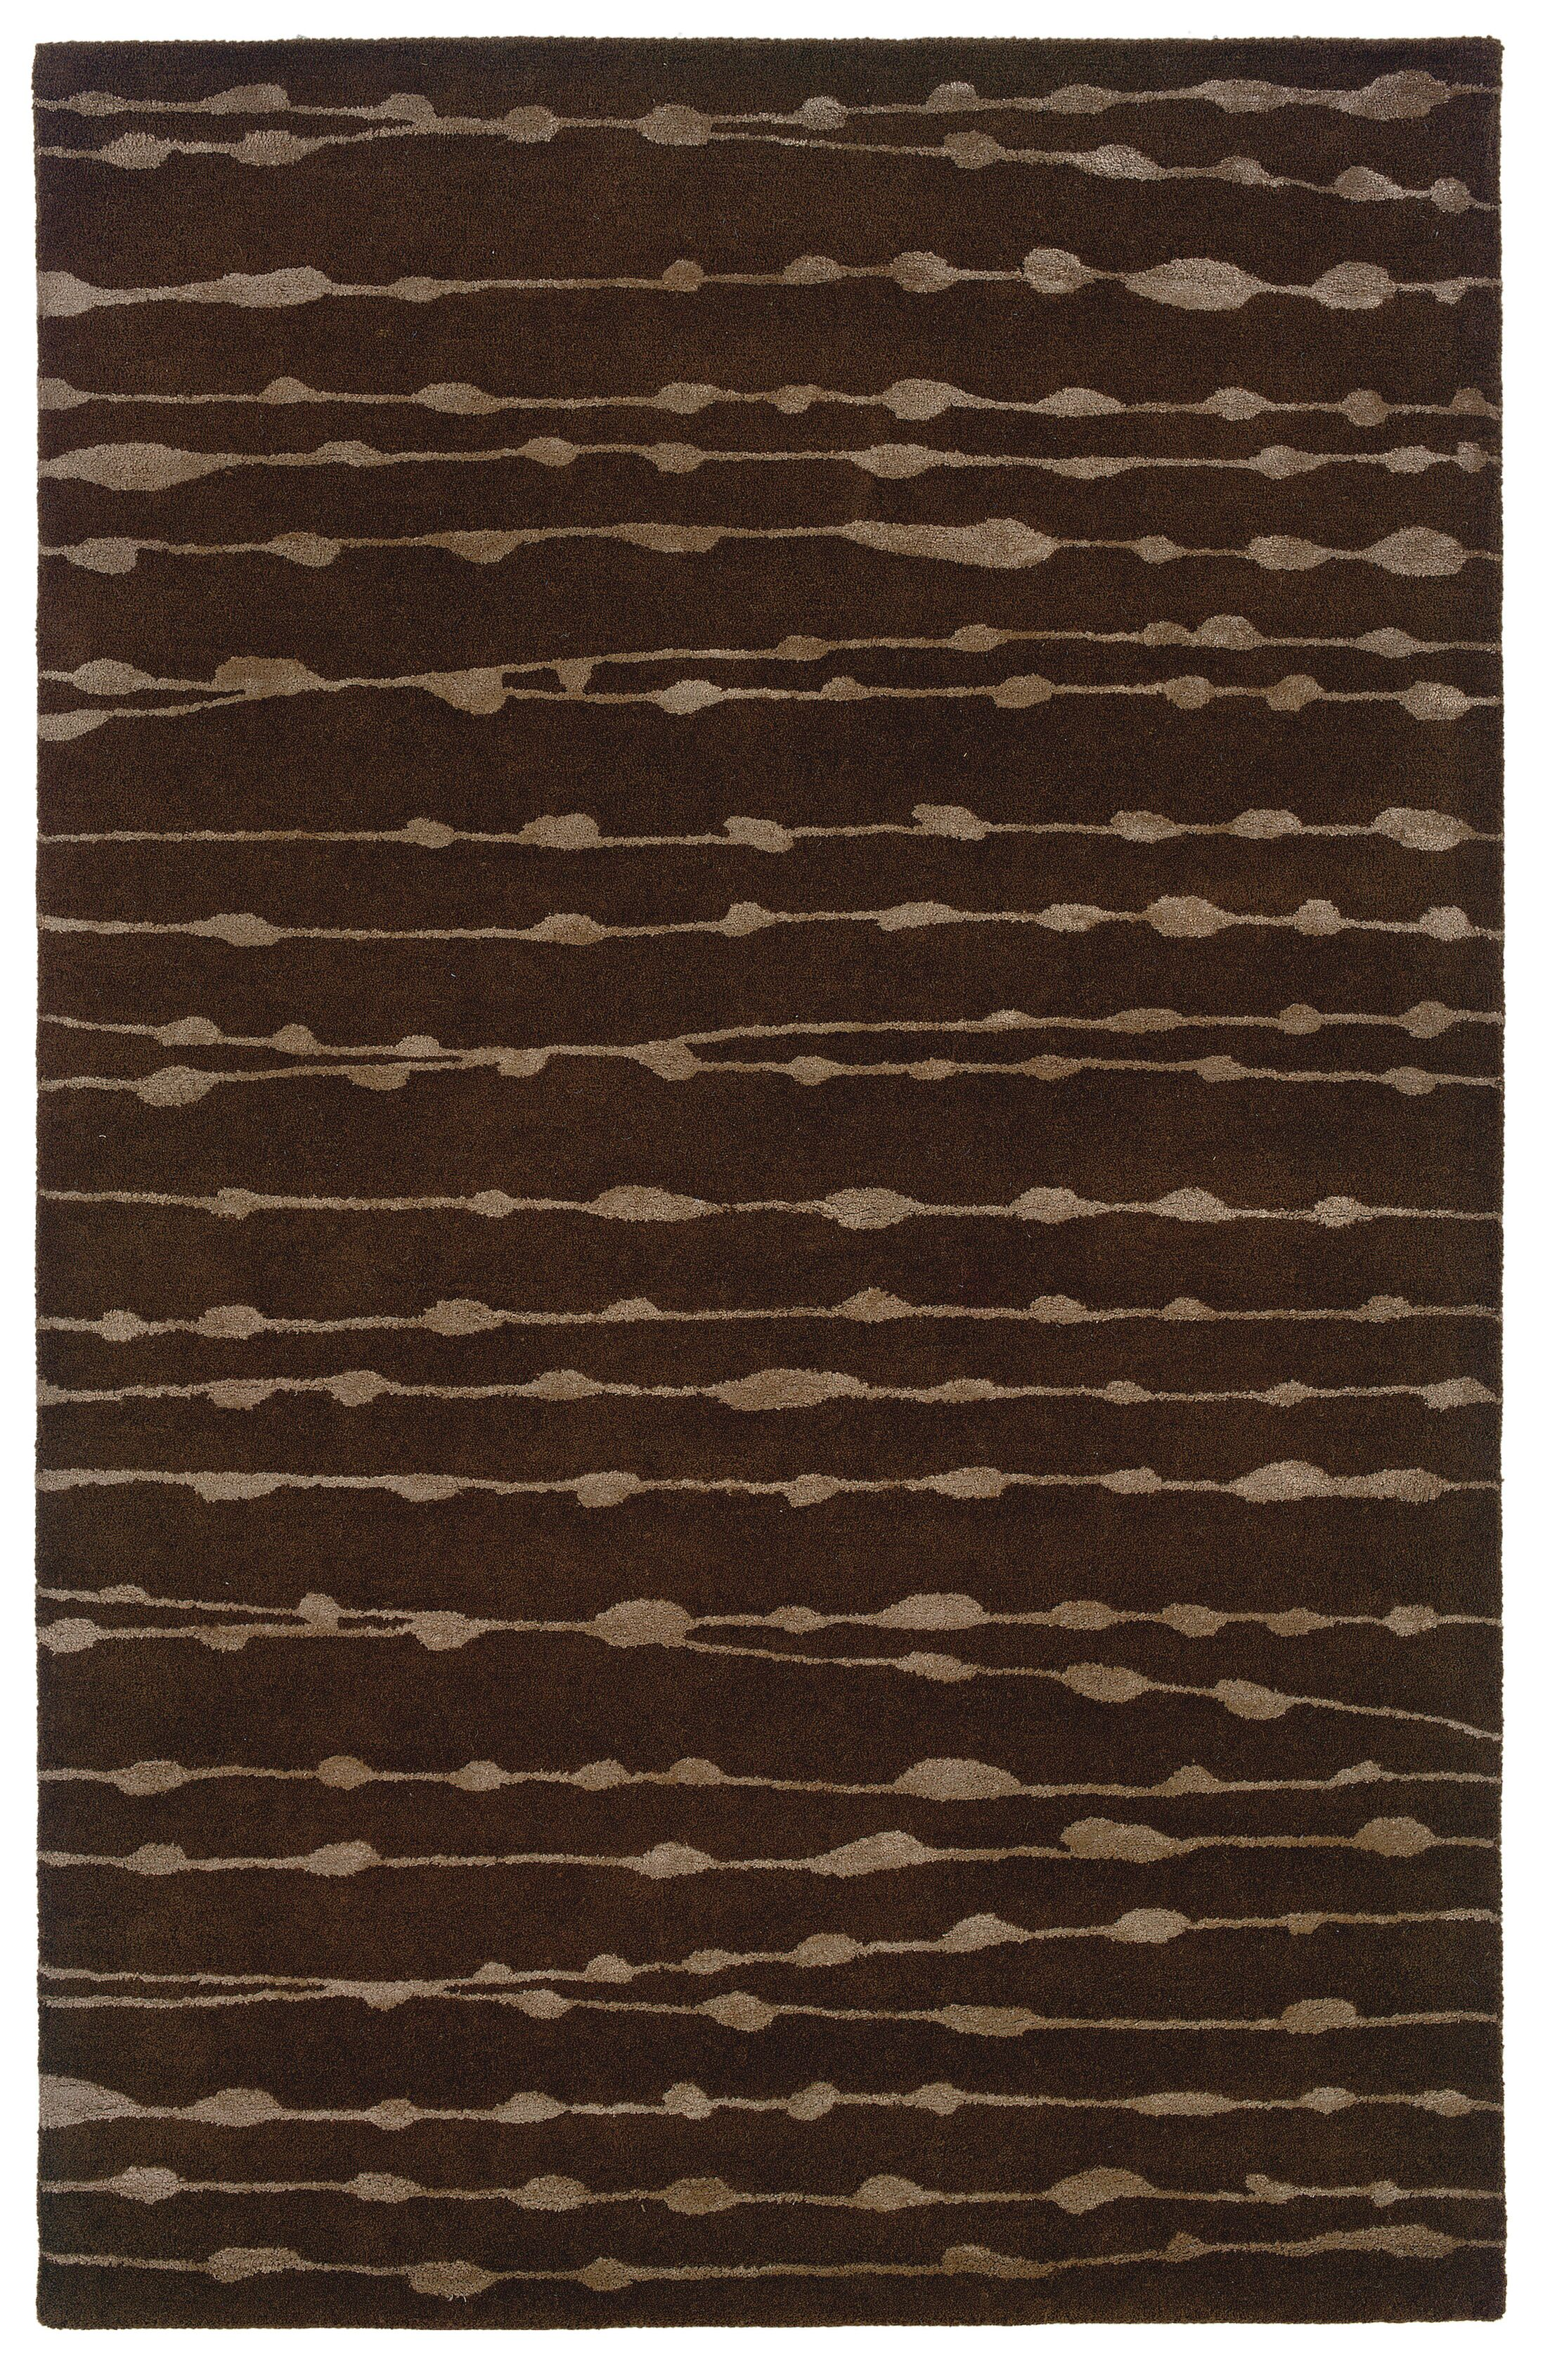 Bagley Brown Area Rug Rug Size: Rectangle 8' x 10'